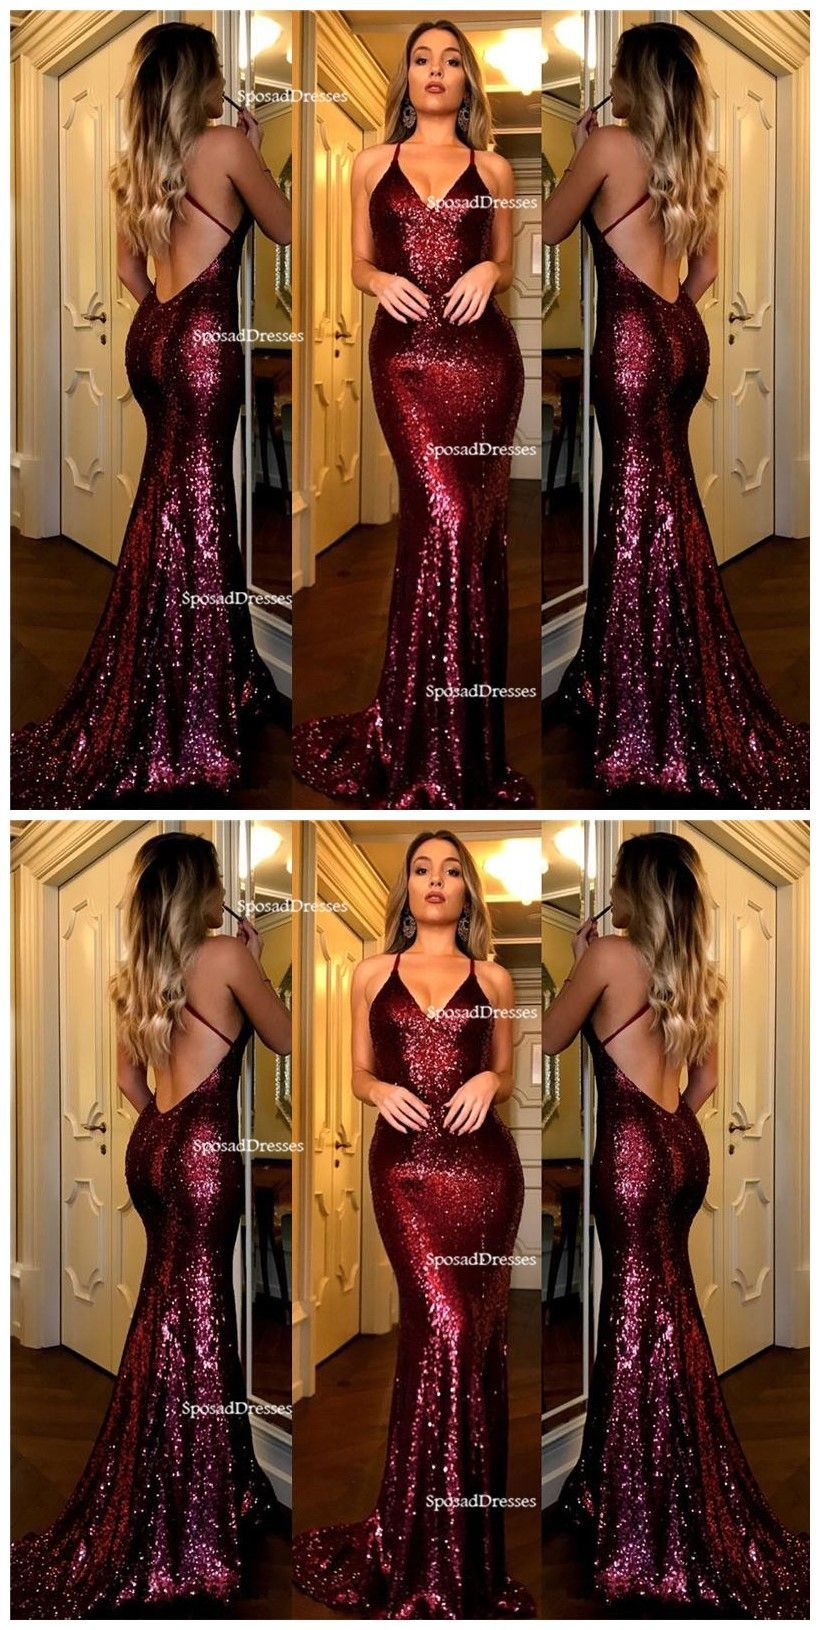 0c26013a070f Sexy Backless Dark Red Sequin Mermaid Evening Prom Dresses, Popular 2018  Party Prom Dresses, Custom Long Prom Dresses, Cheap Formal Prom Dresses,  17209